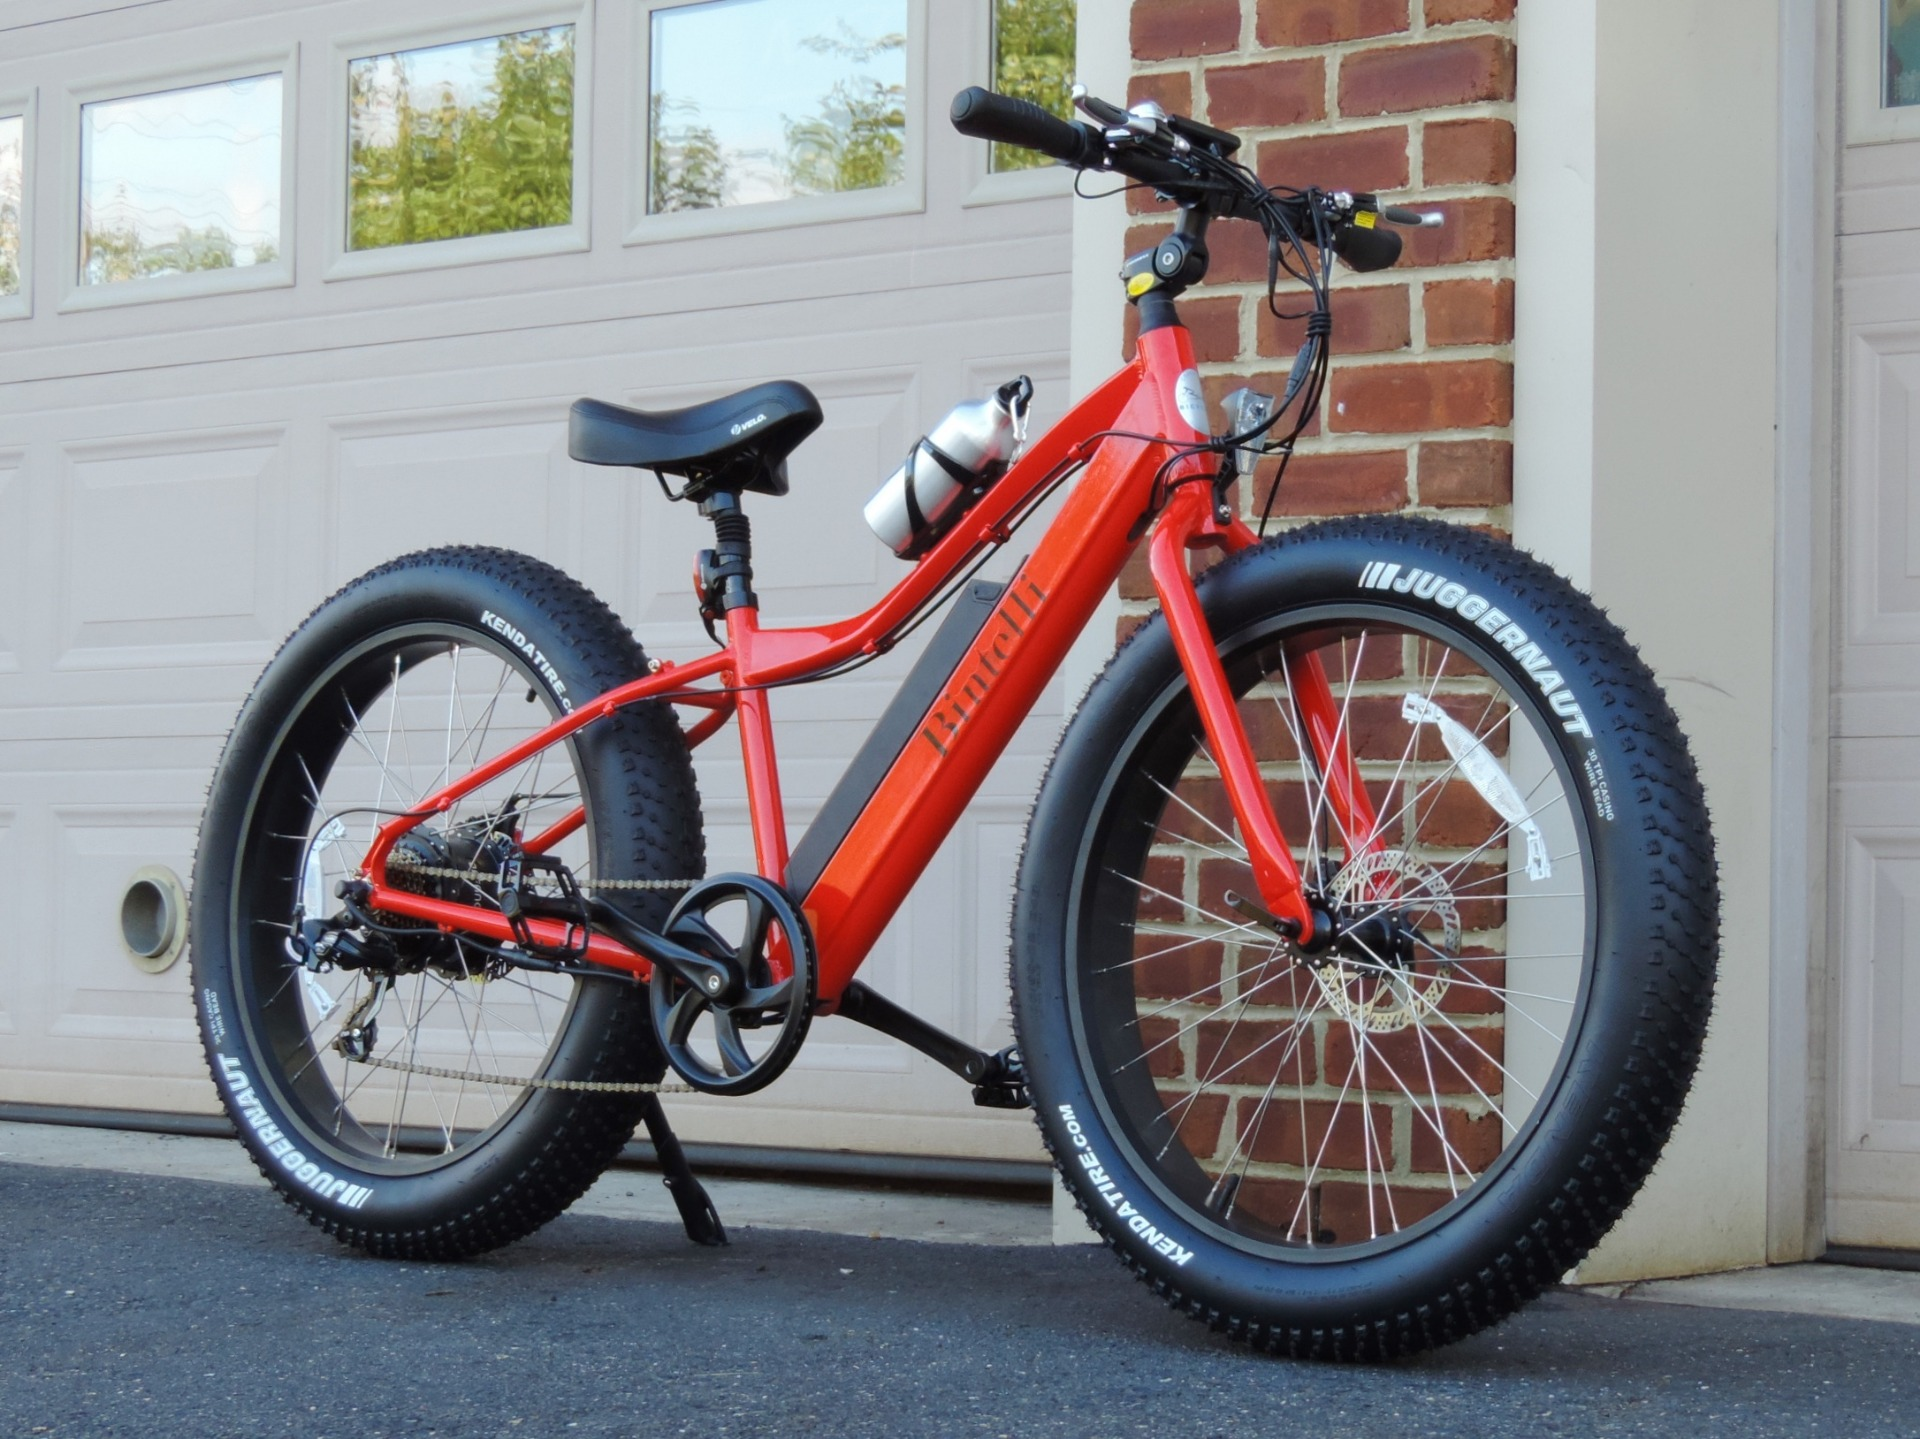 New-2019-Bintelli-M1-Electric-Fat-Tire-Bike